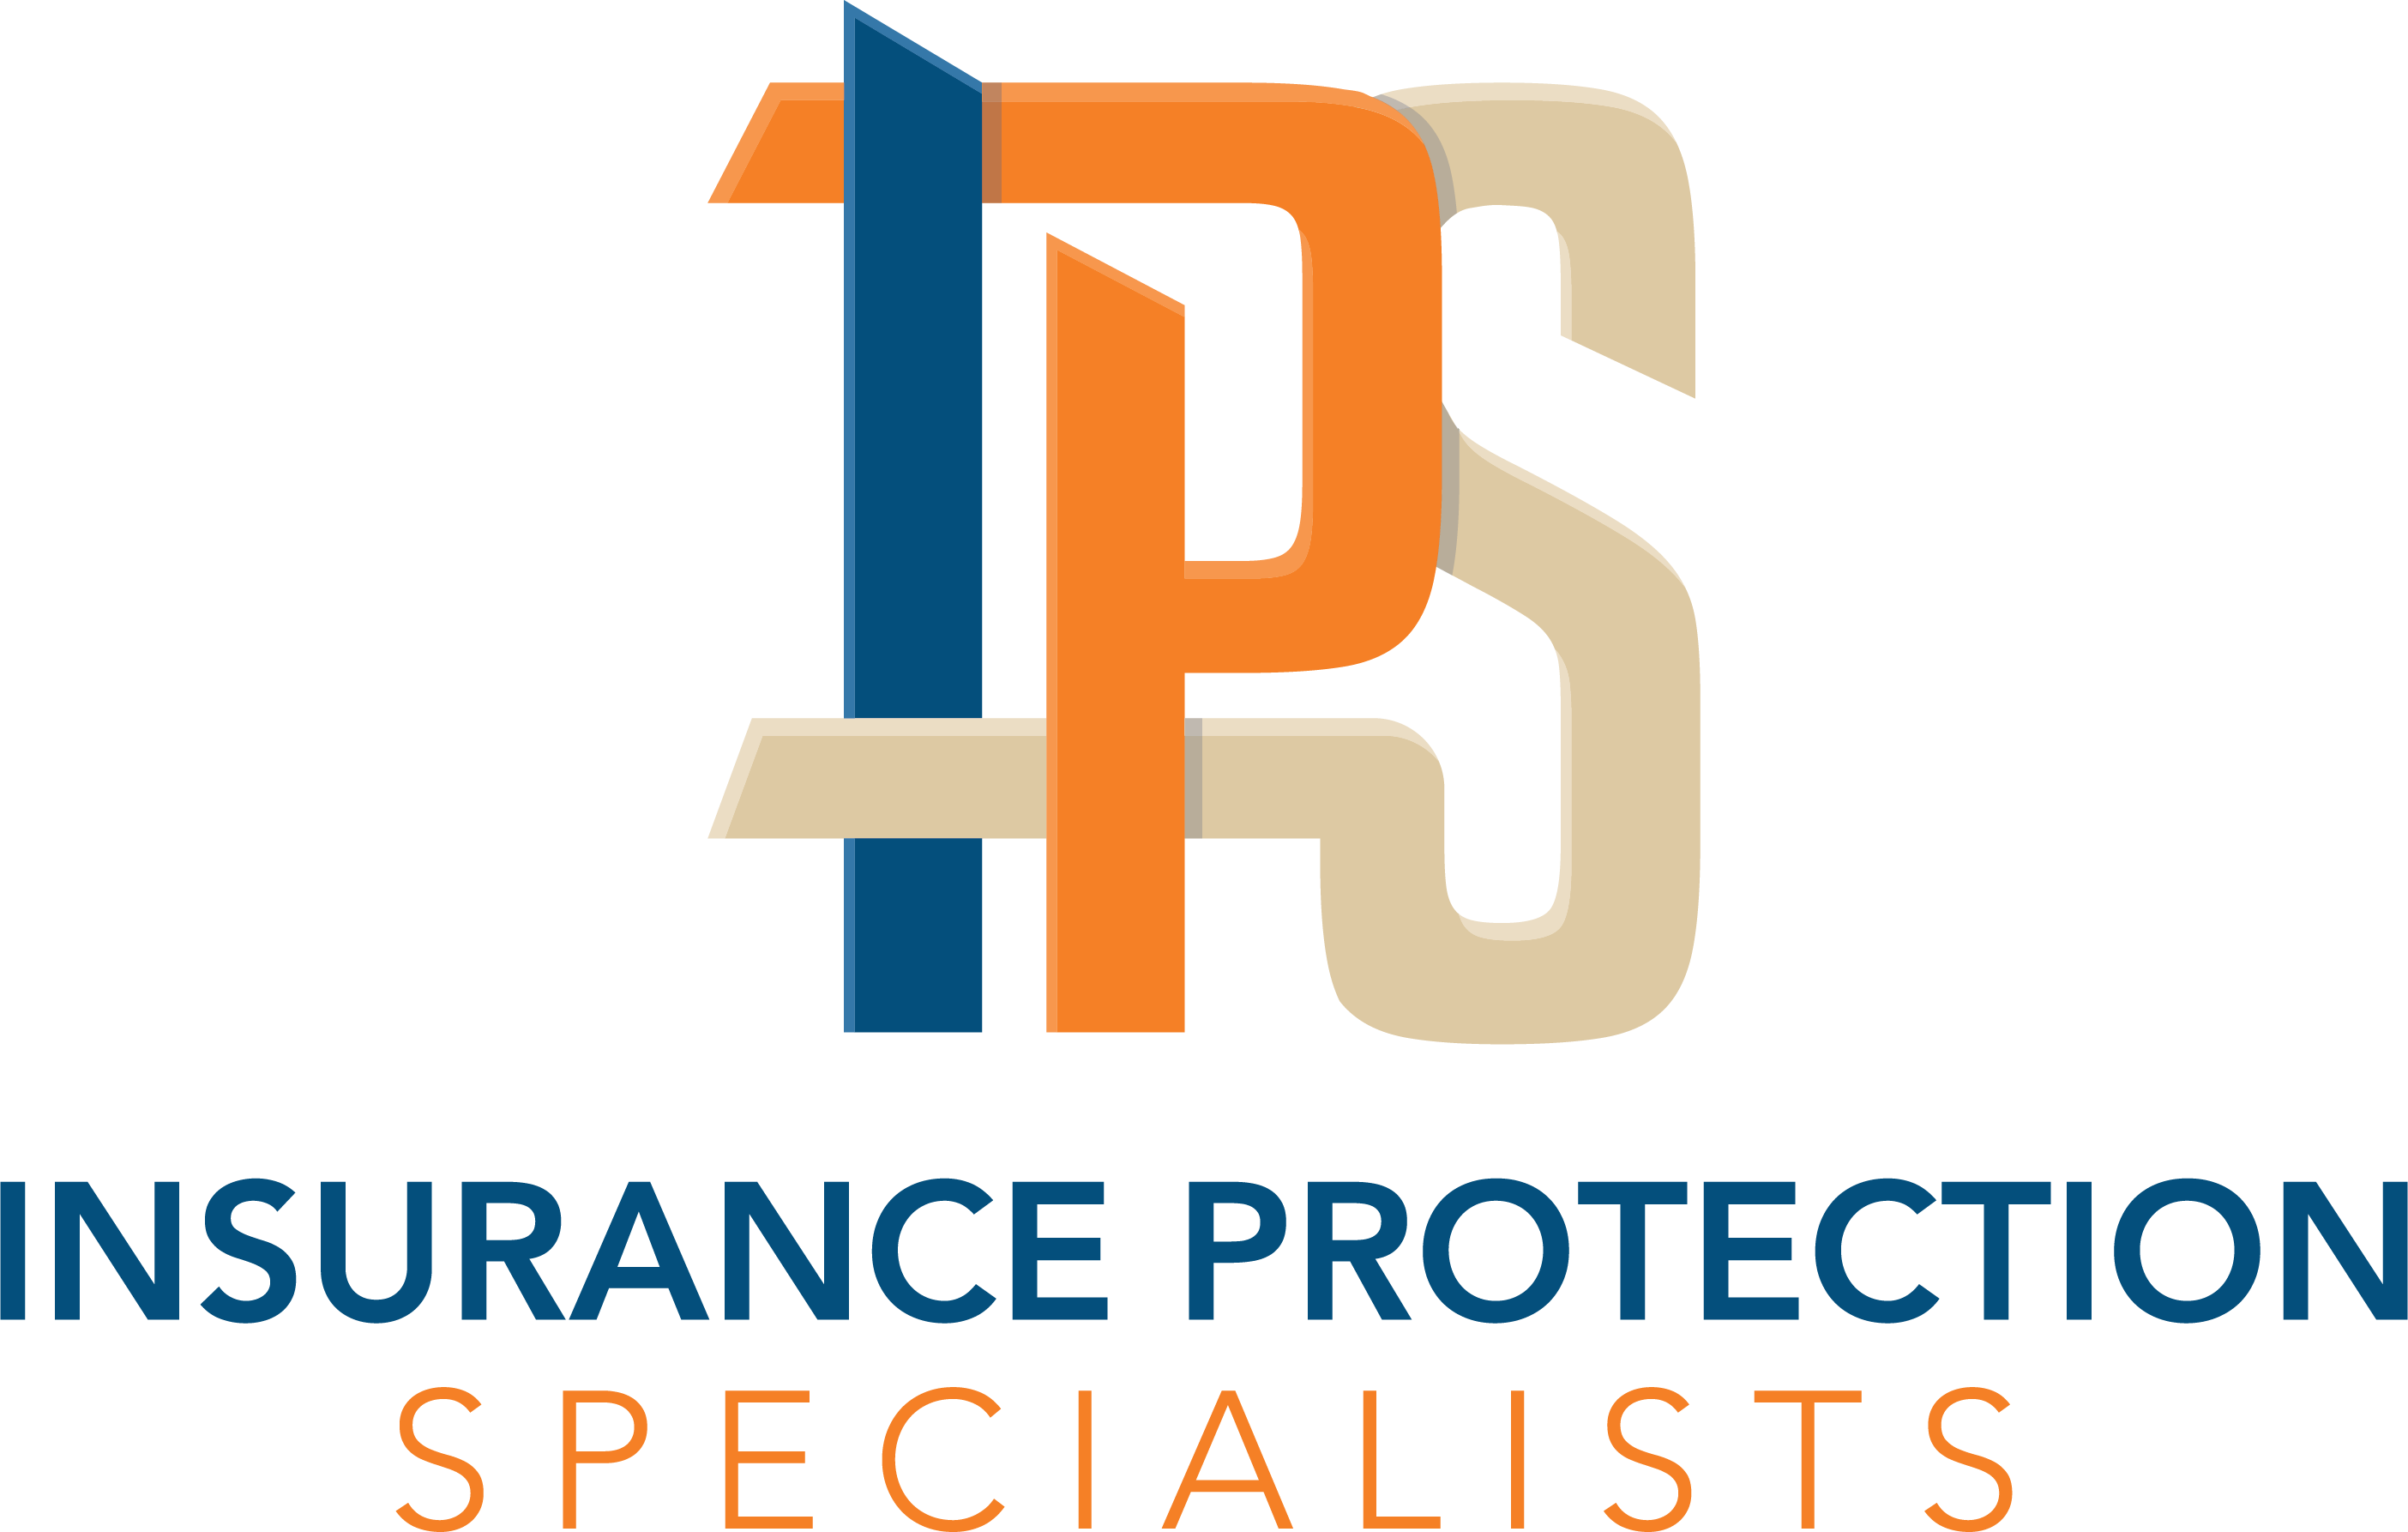 Insurance Protection Specialists logo